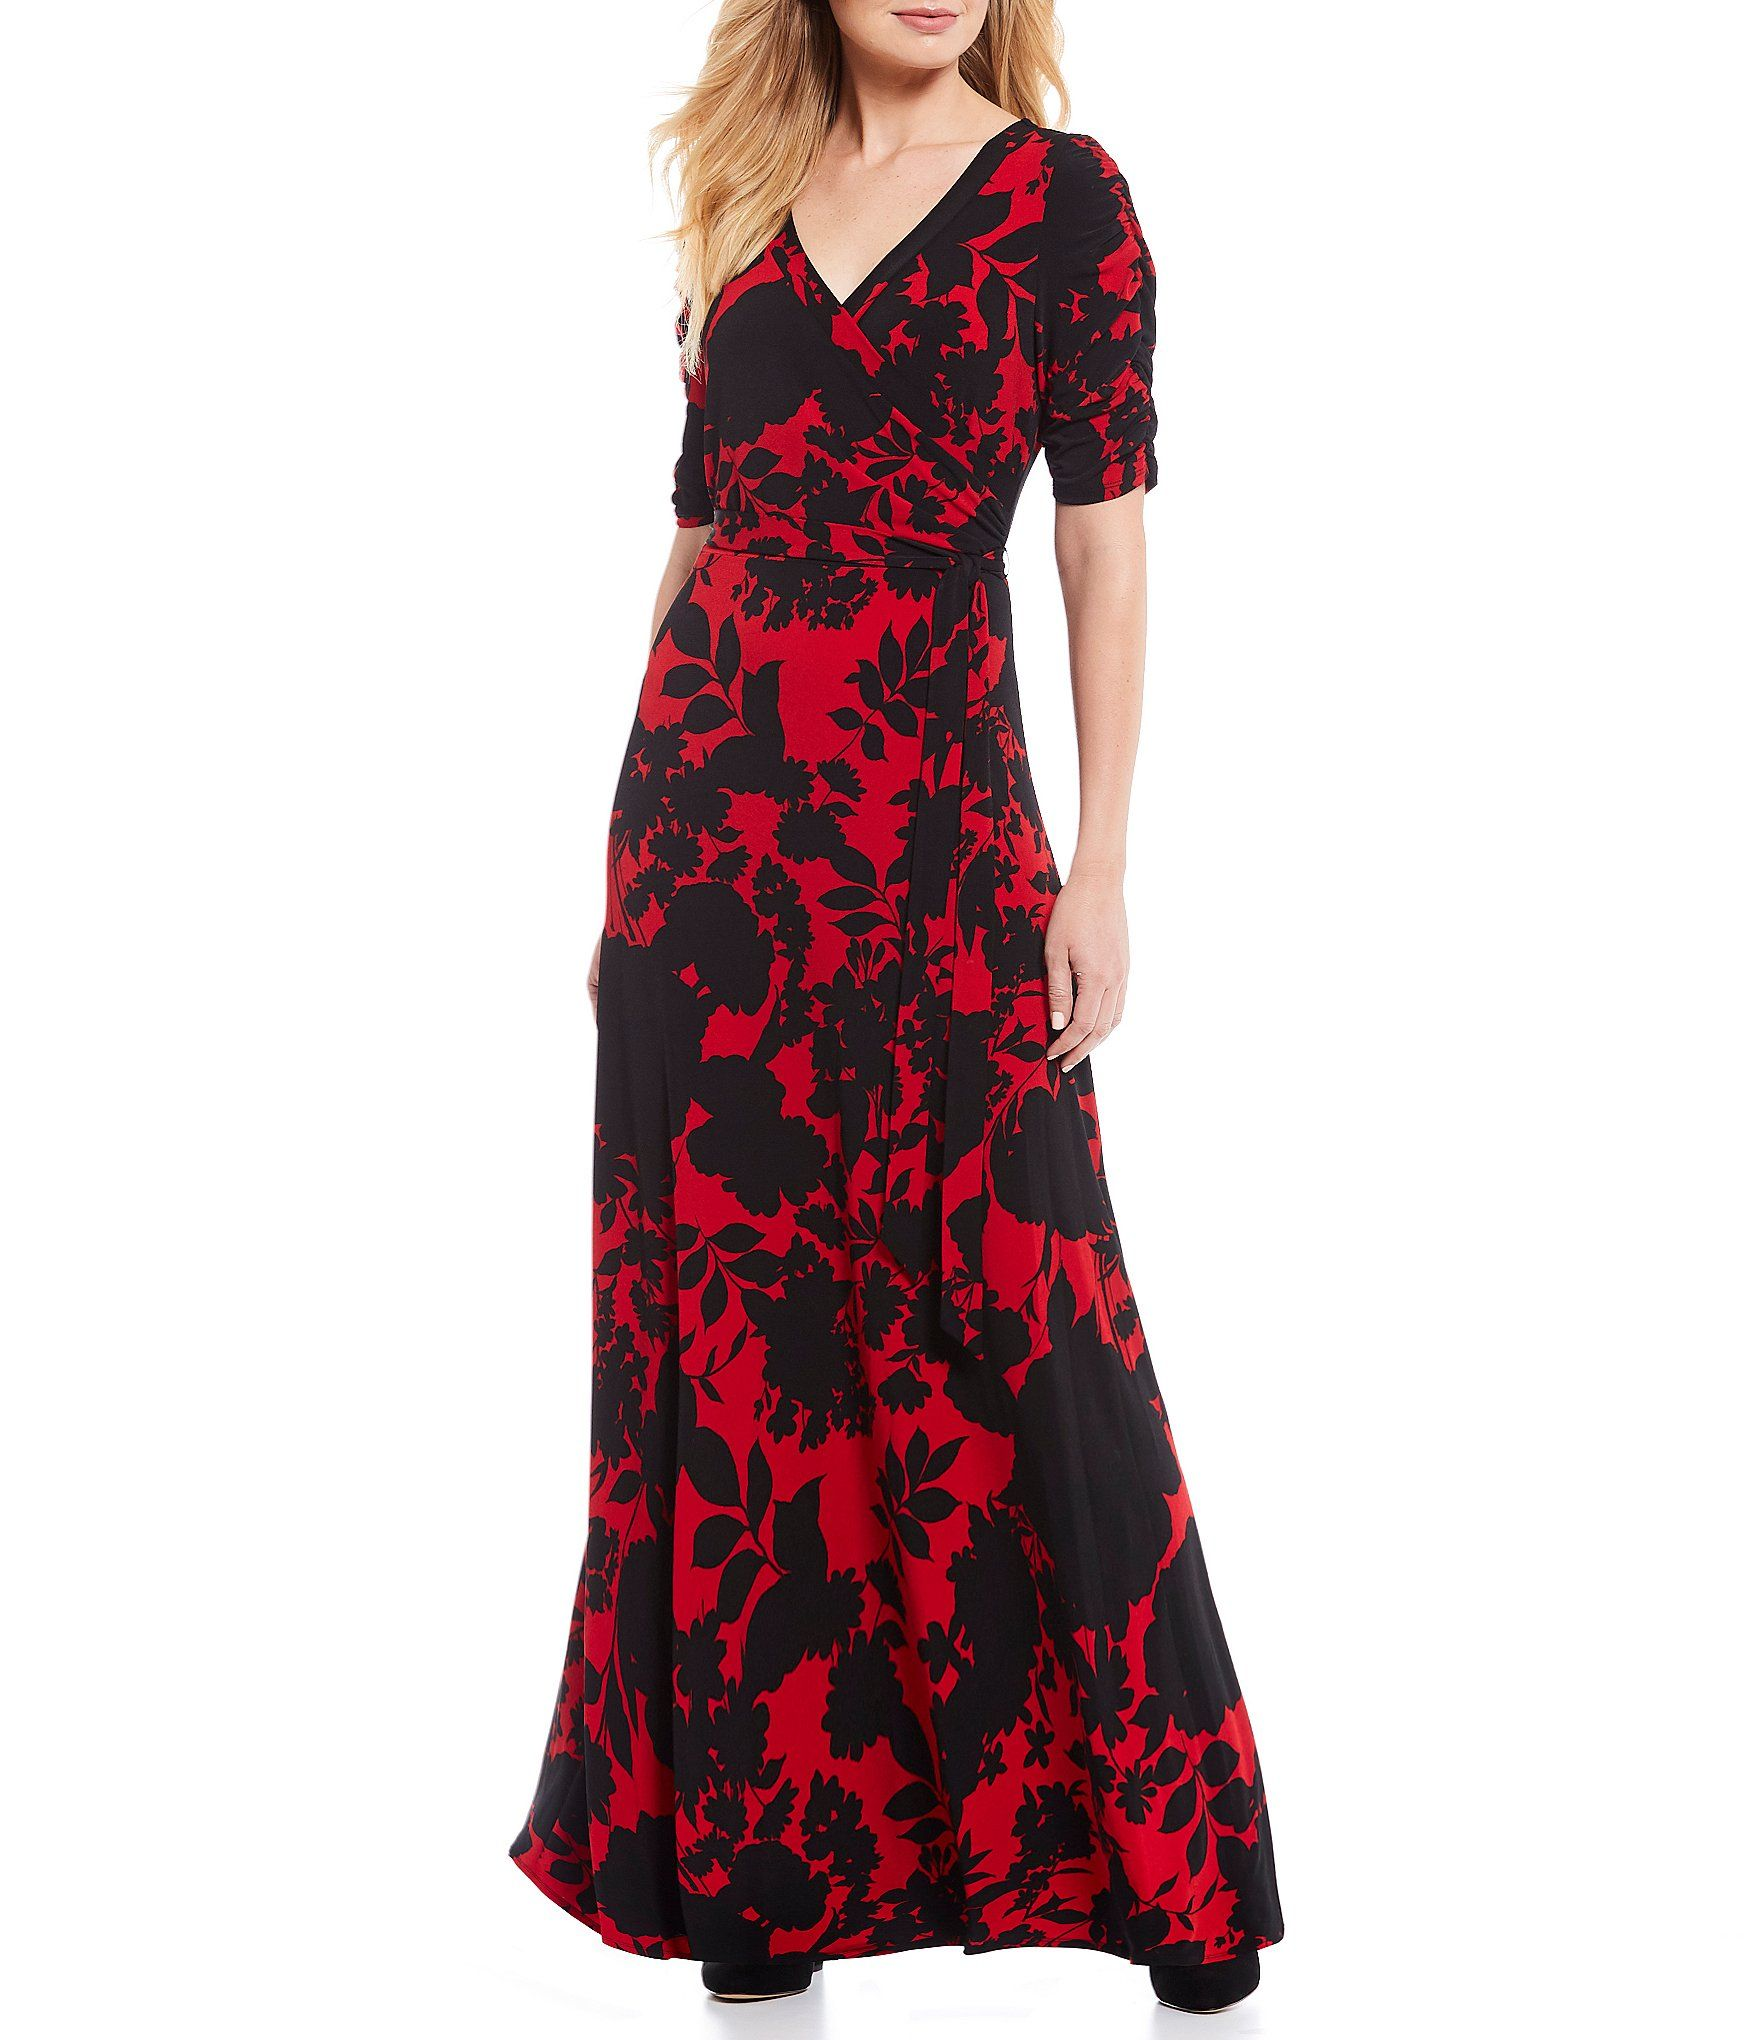 Gibson  Latimer Floral Print Wrap Short Sleeve Surplice V-Neck Jersey Knit Maxi Dress – Red Black XXL